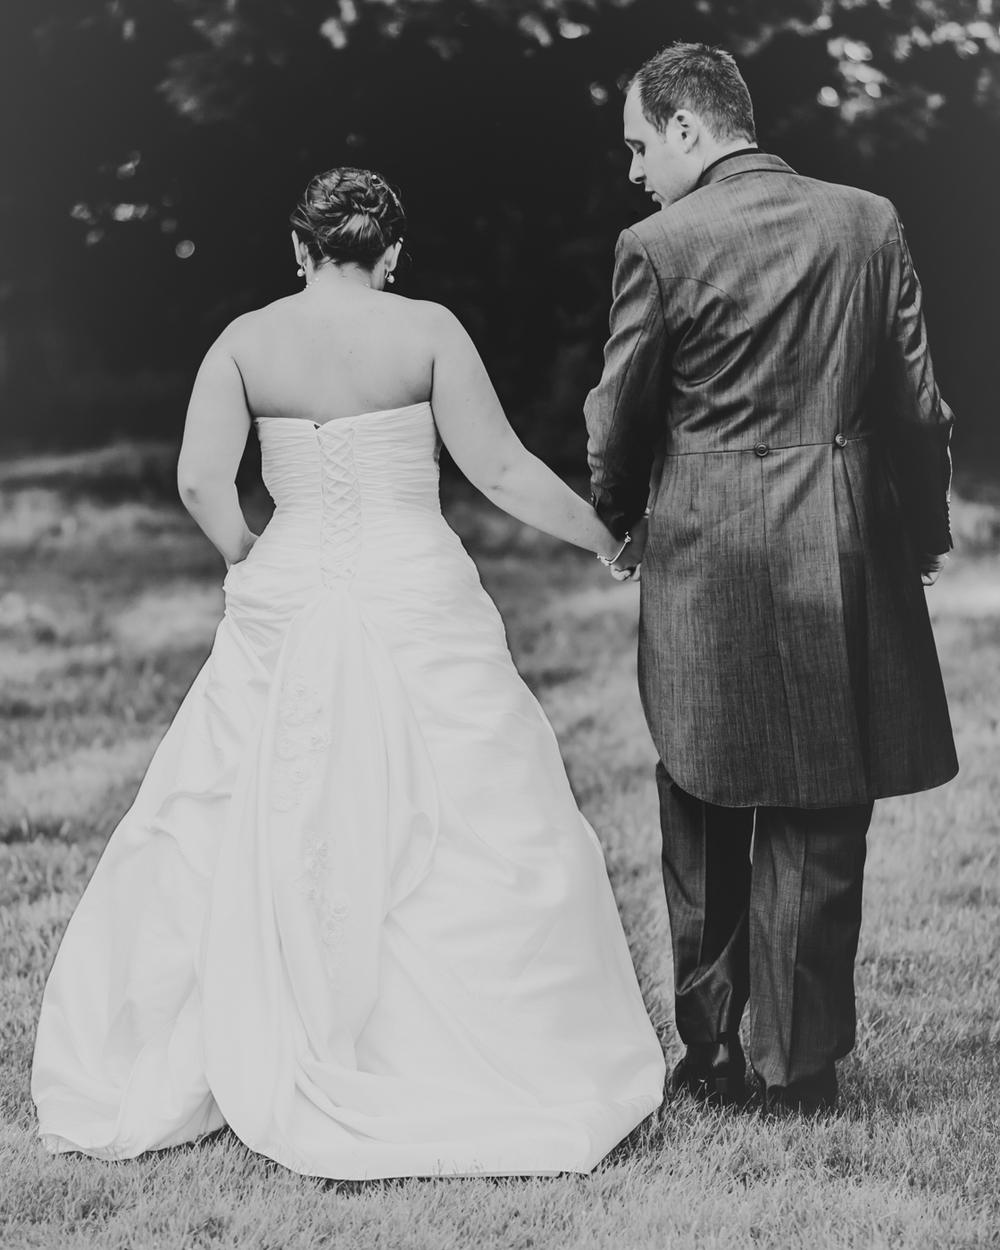 541 - Chris and Natalies Wedding (MAIN) - DO NOT SHARE THIS IMAGES ONLINE -4846.JPG